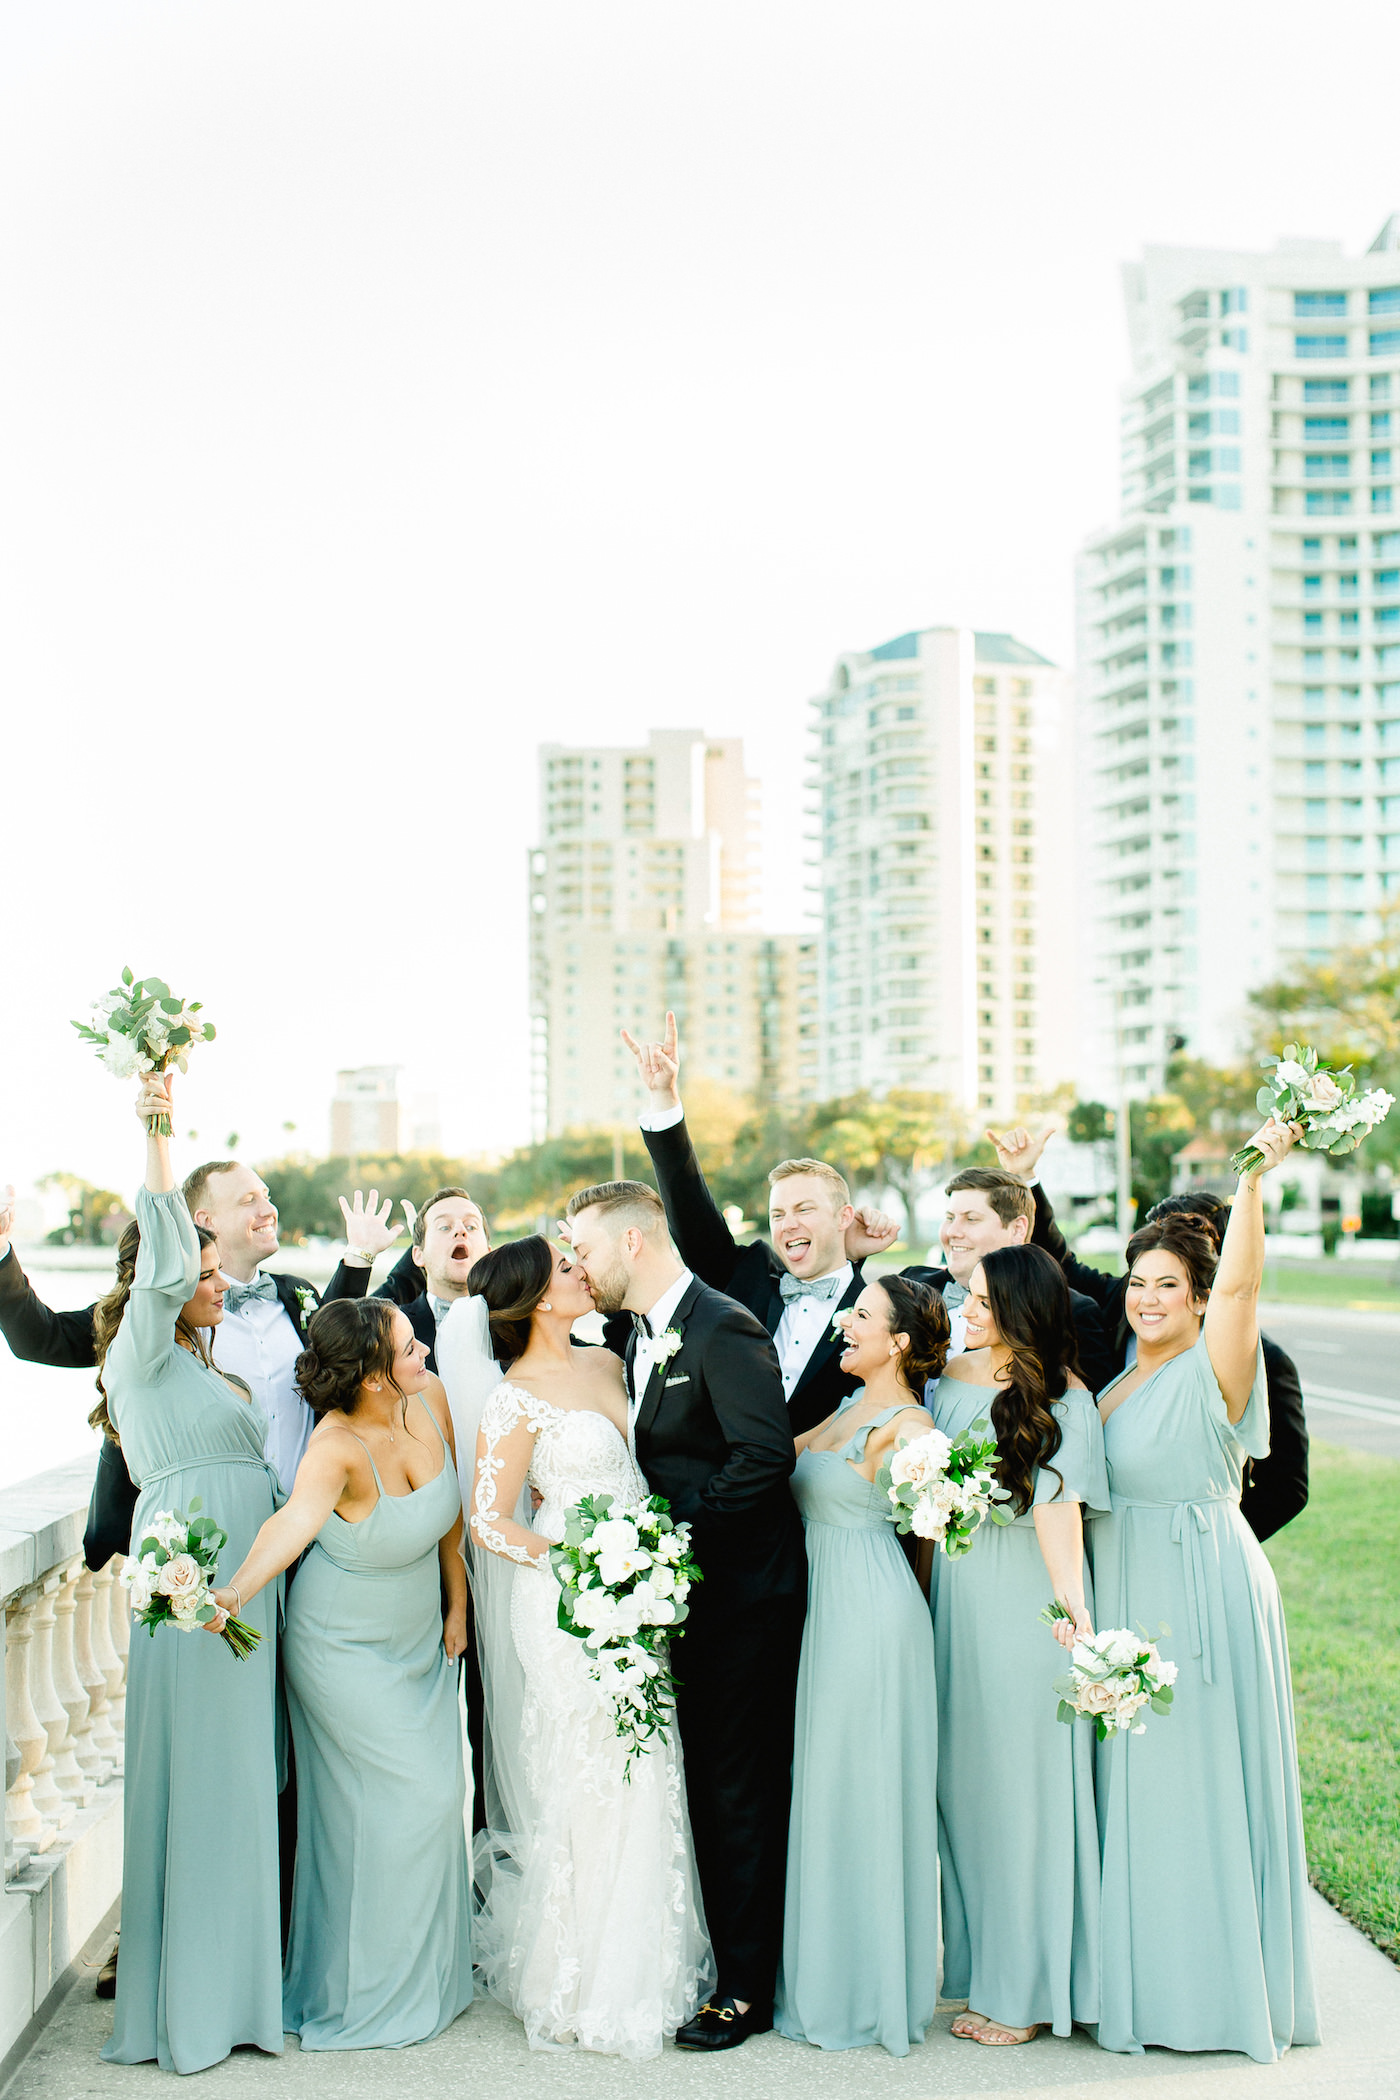 Tampa Bay Fun Wedding Party on Bayshore Boulevard, Bridesmaids in Long Mix and Match Show Me Your Mumu Dresses, Florida Bride in Illusion Lace Sleeve Fit and Flare Wedding Dress, Holding Wedding Floral Bouquet with White Orchids, Ivory Roses and Greenery | Florida Wedding Planner Breezin' Weddings